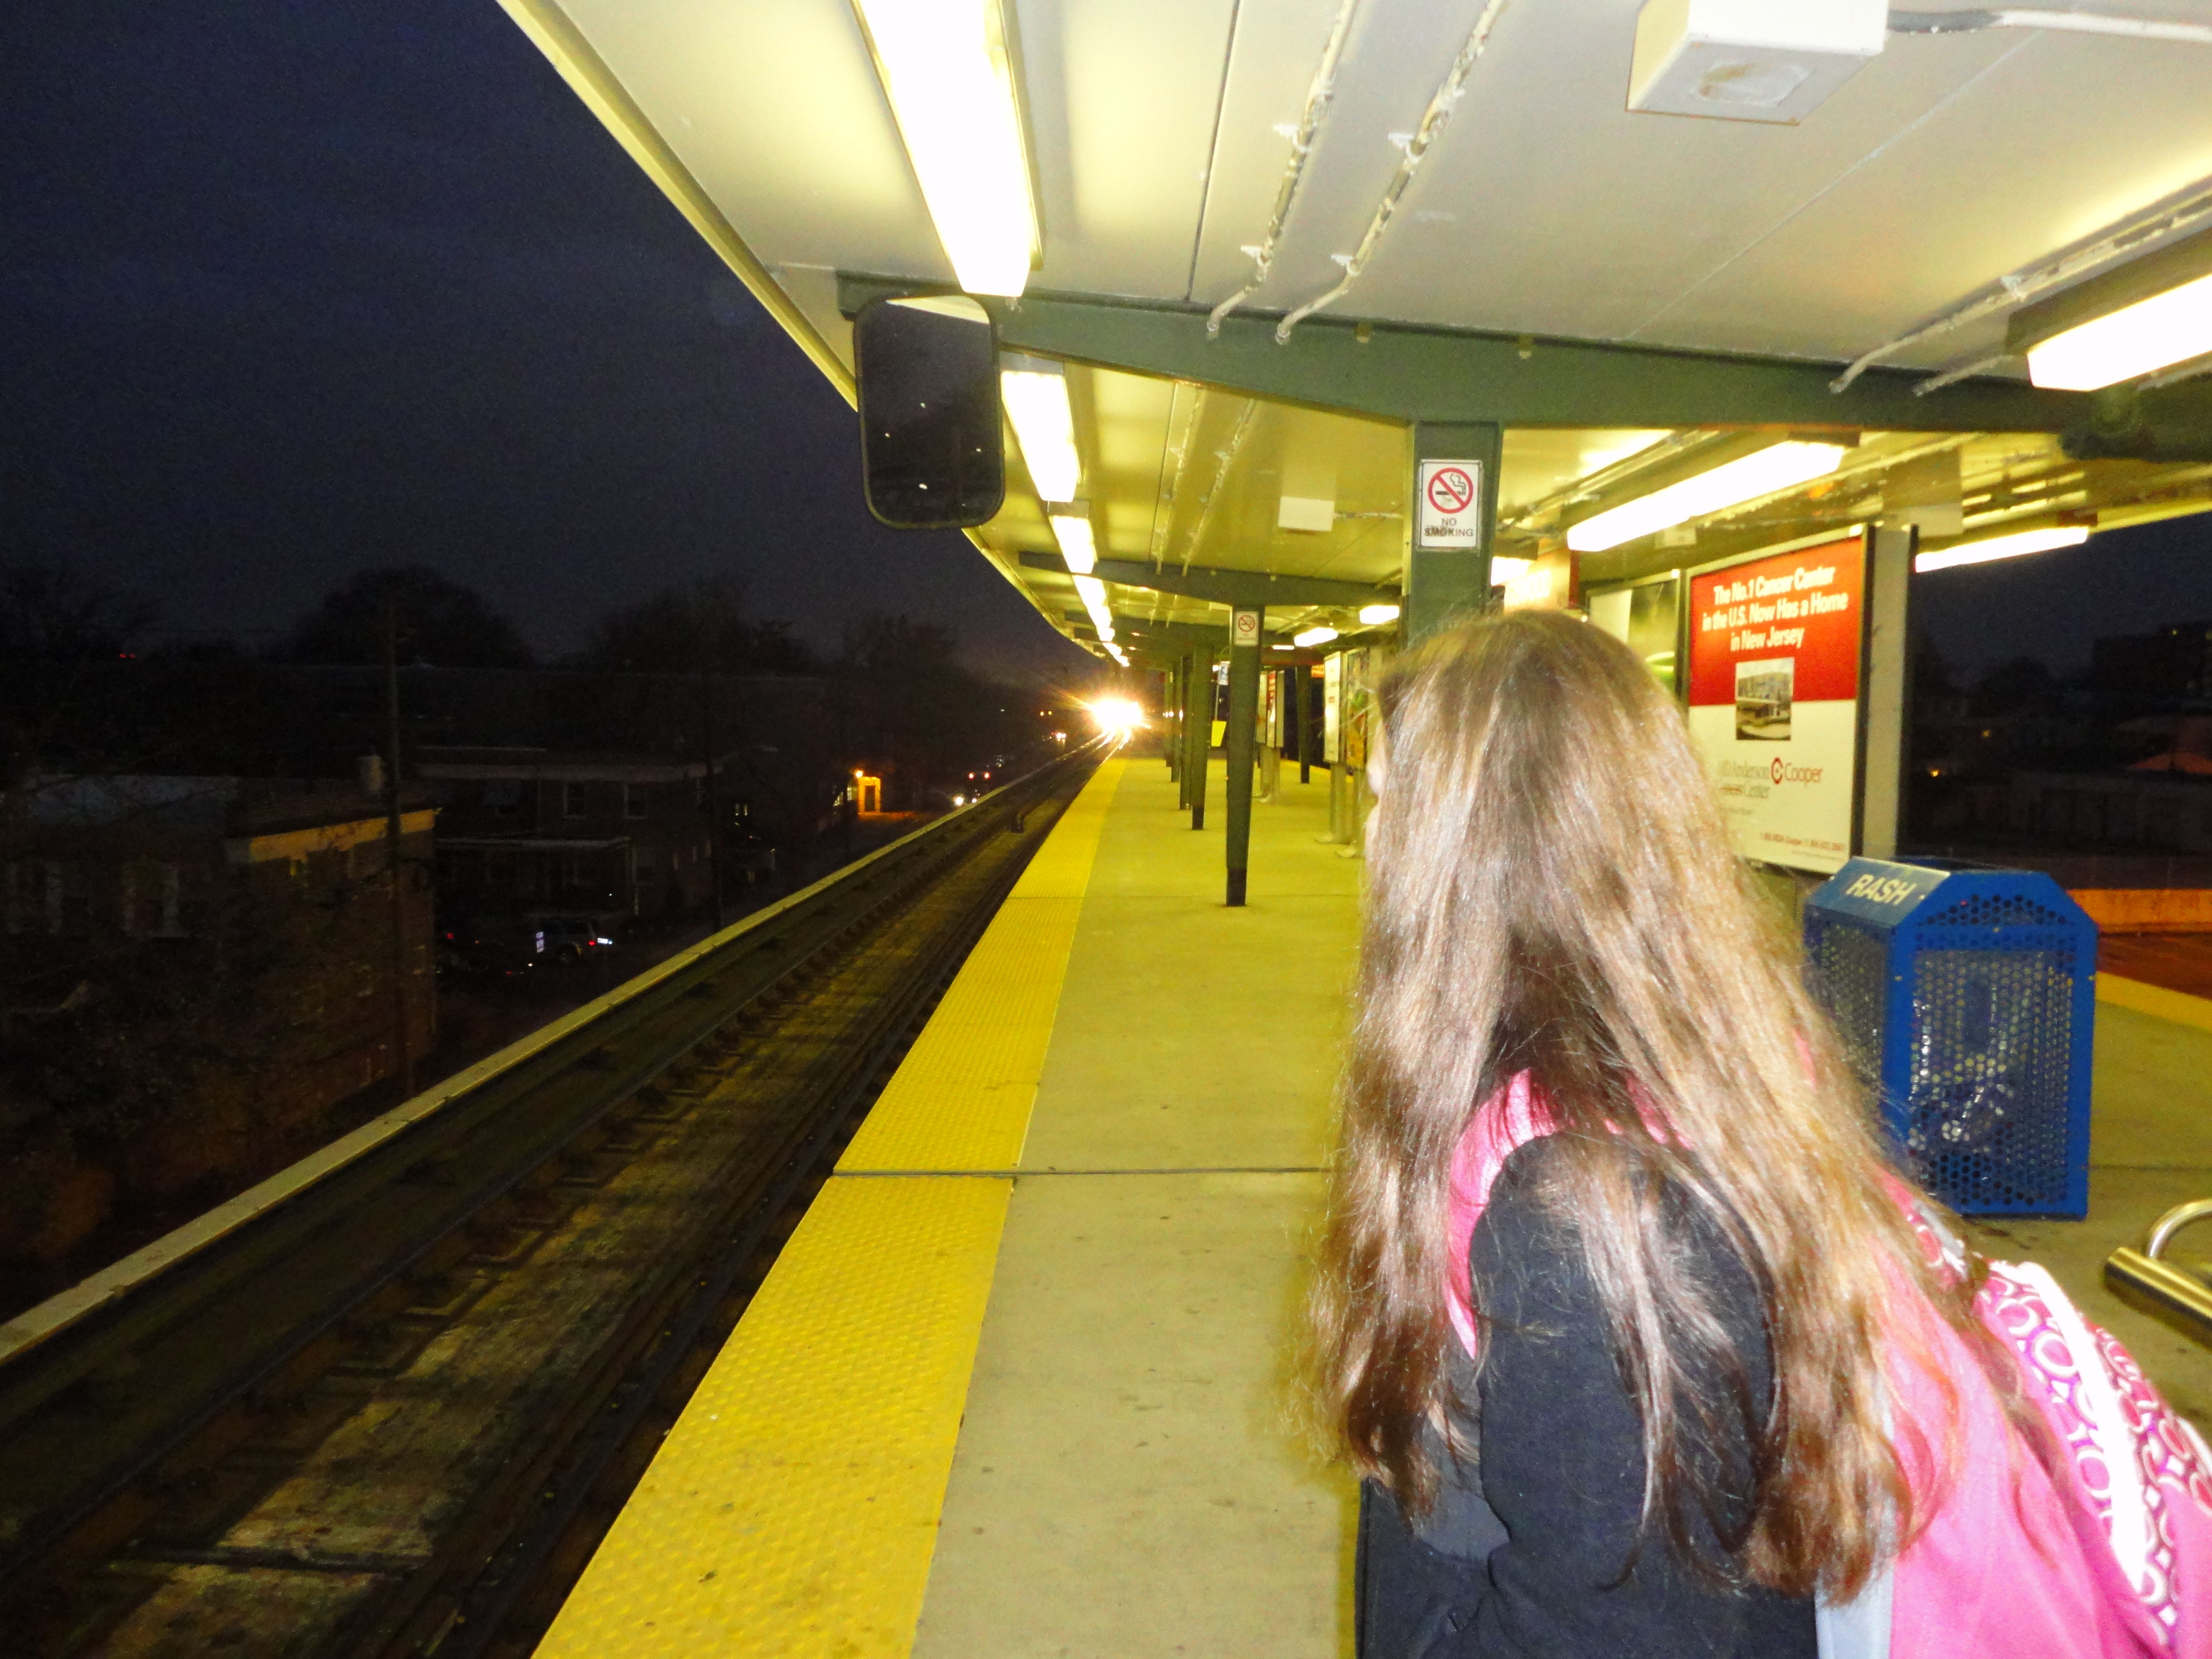 narrative essay an hour at the railway station Below is a short essay on train station novels written by walter  the powerfully  rhythmic and syncopated narratives, whose stations one flies through  and  sensation chases past the train screamingly — when for a few hours,.